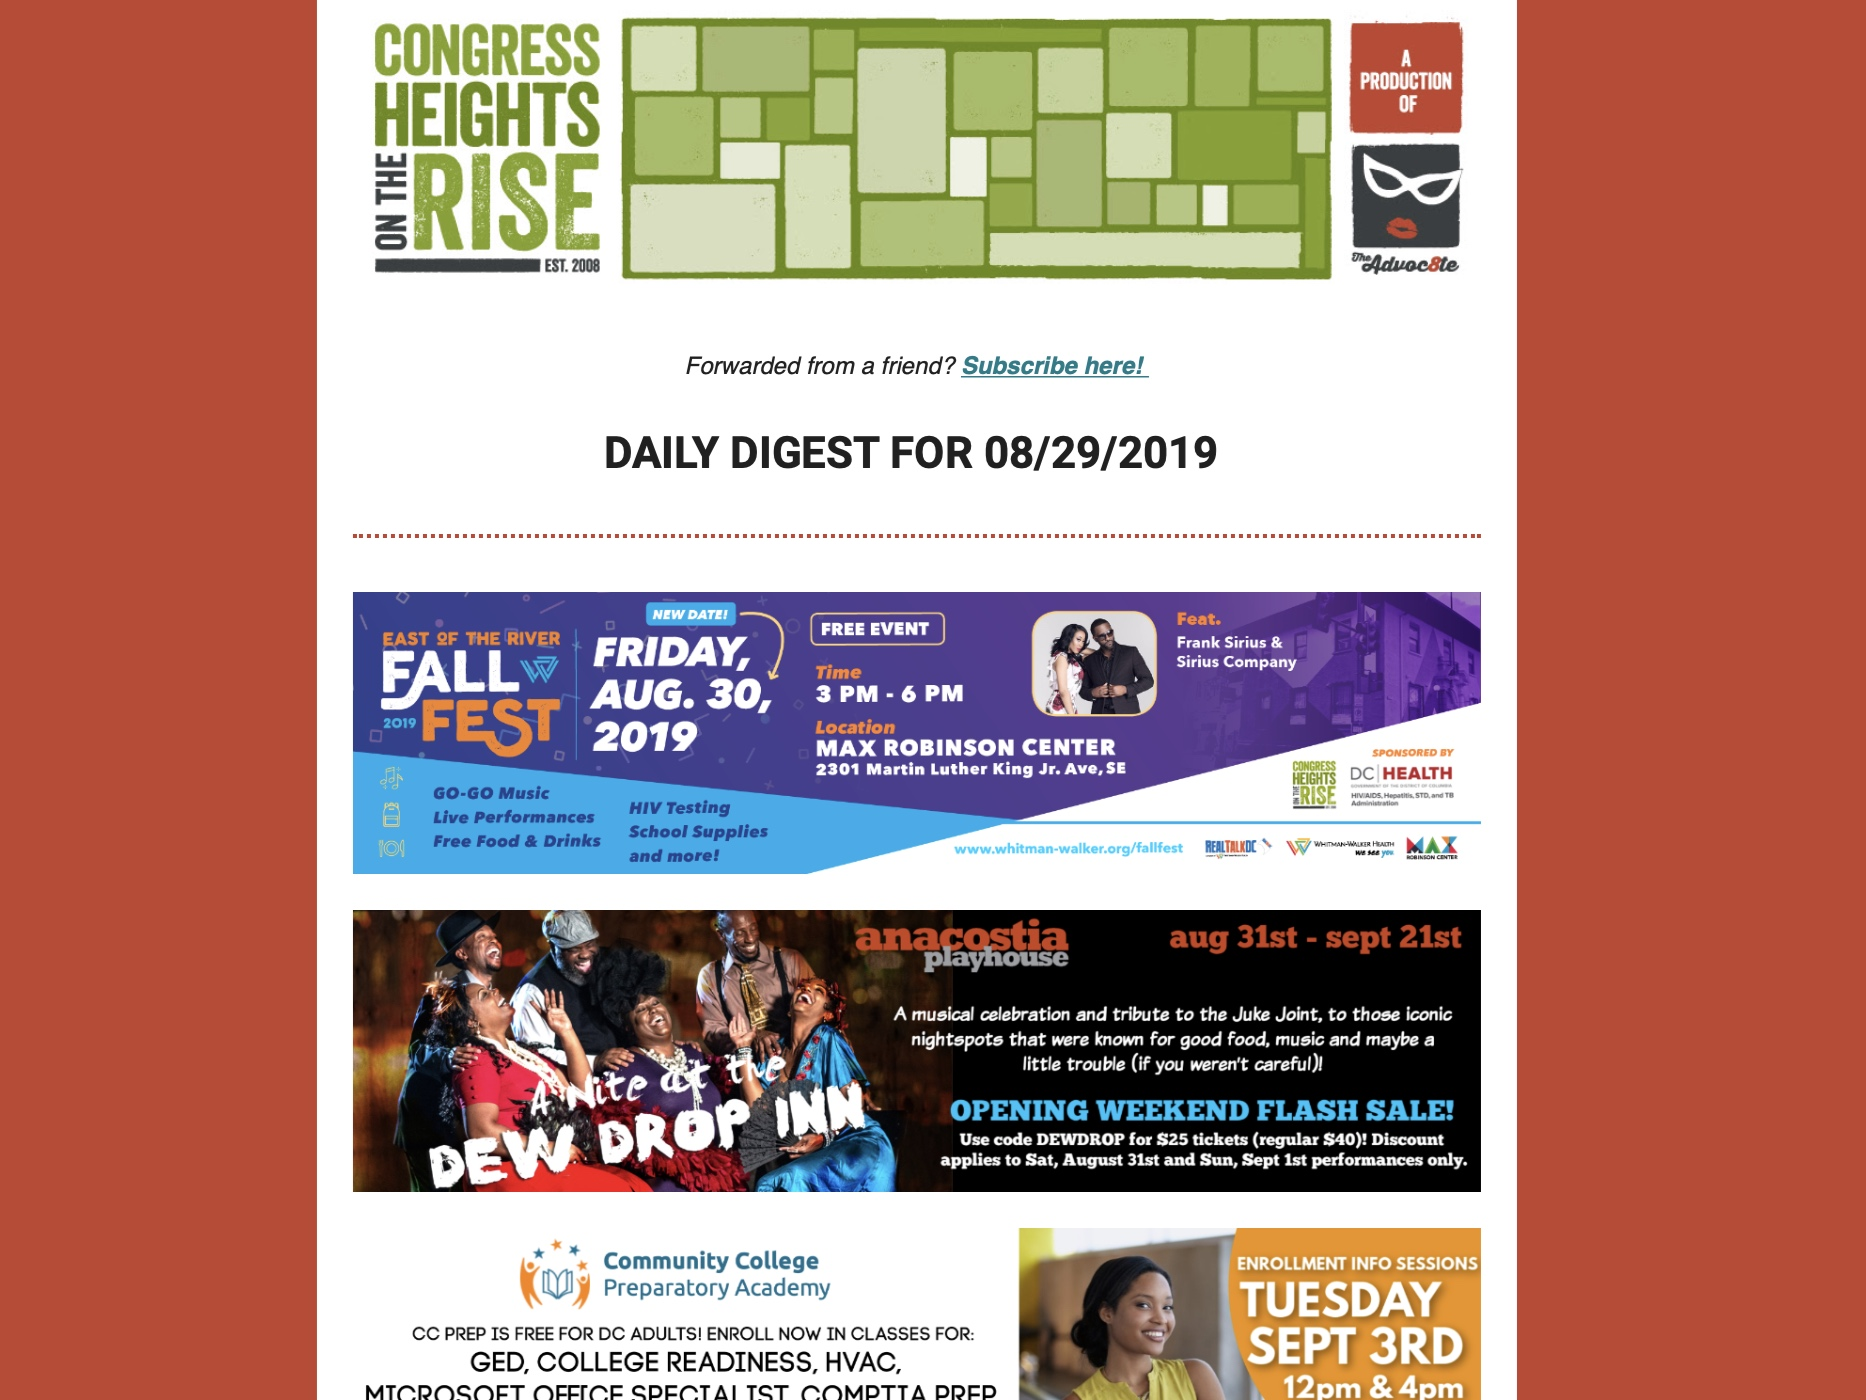 CHotR's Daily Digest goes out 7 days a week